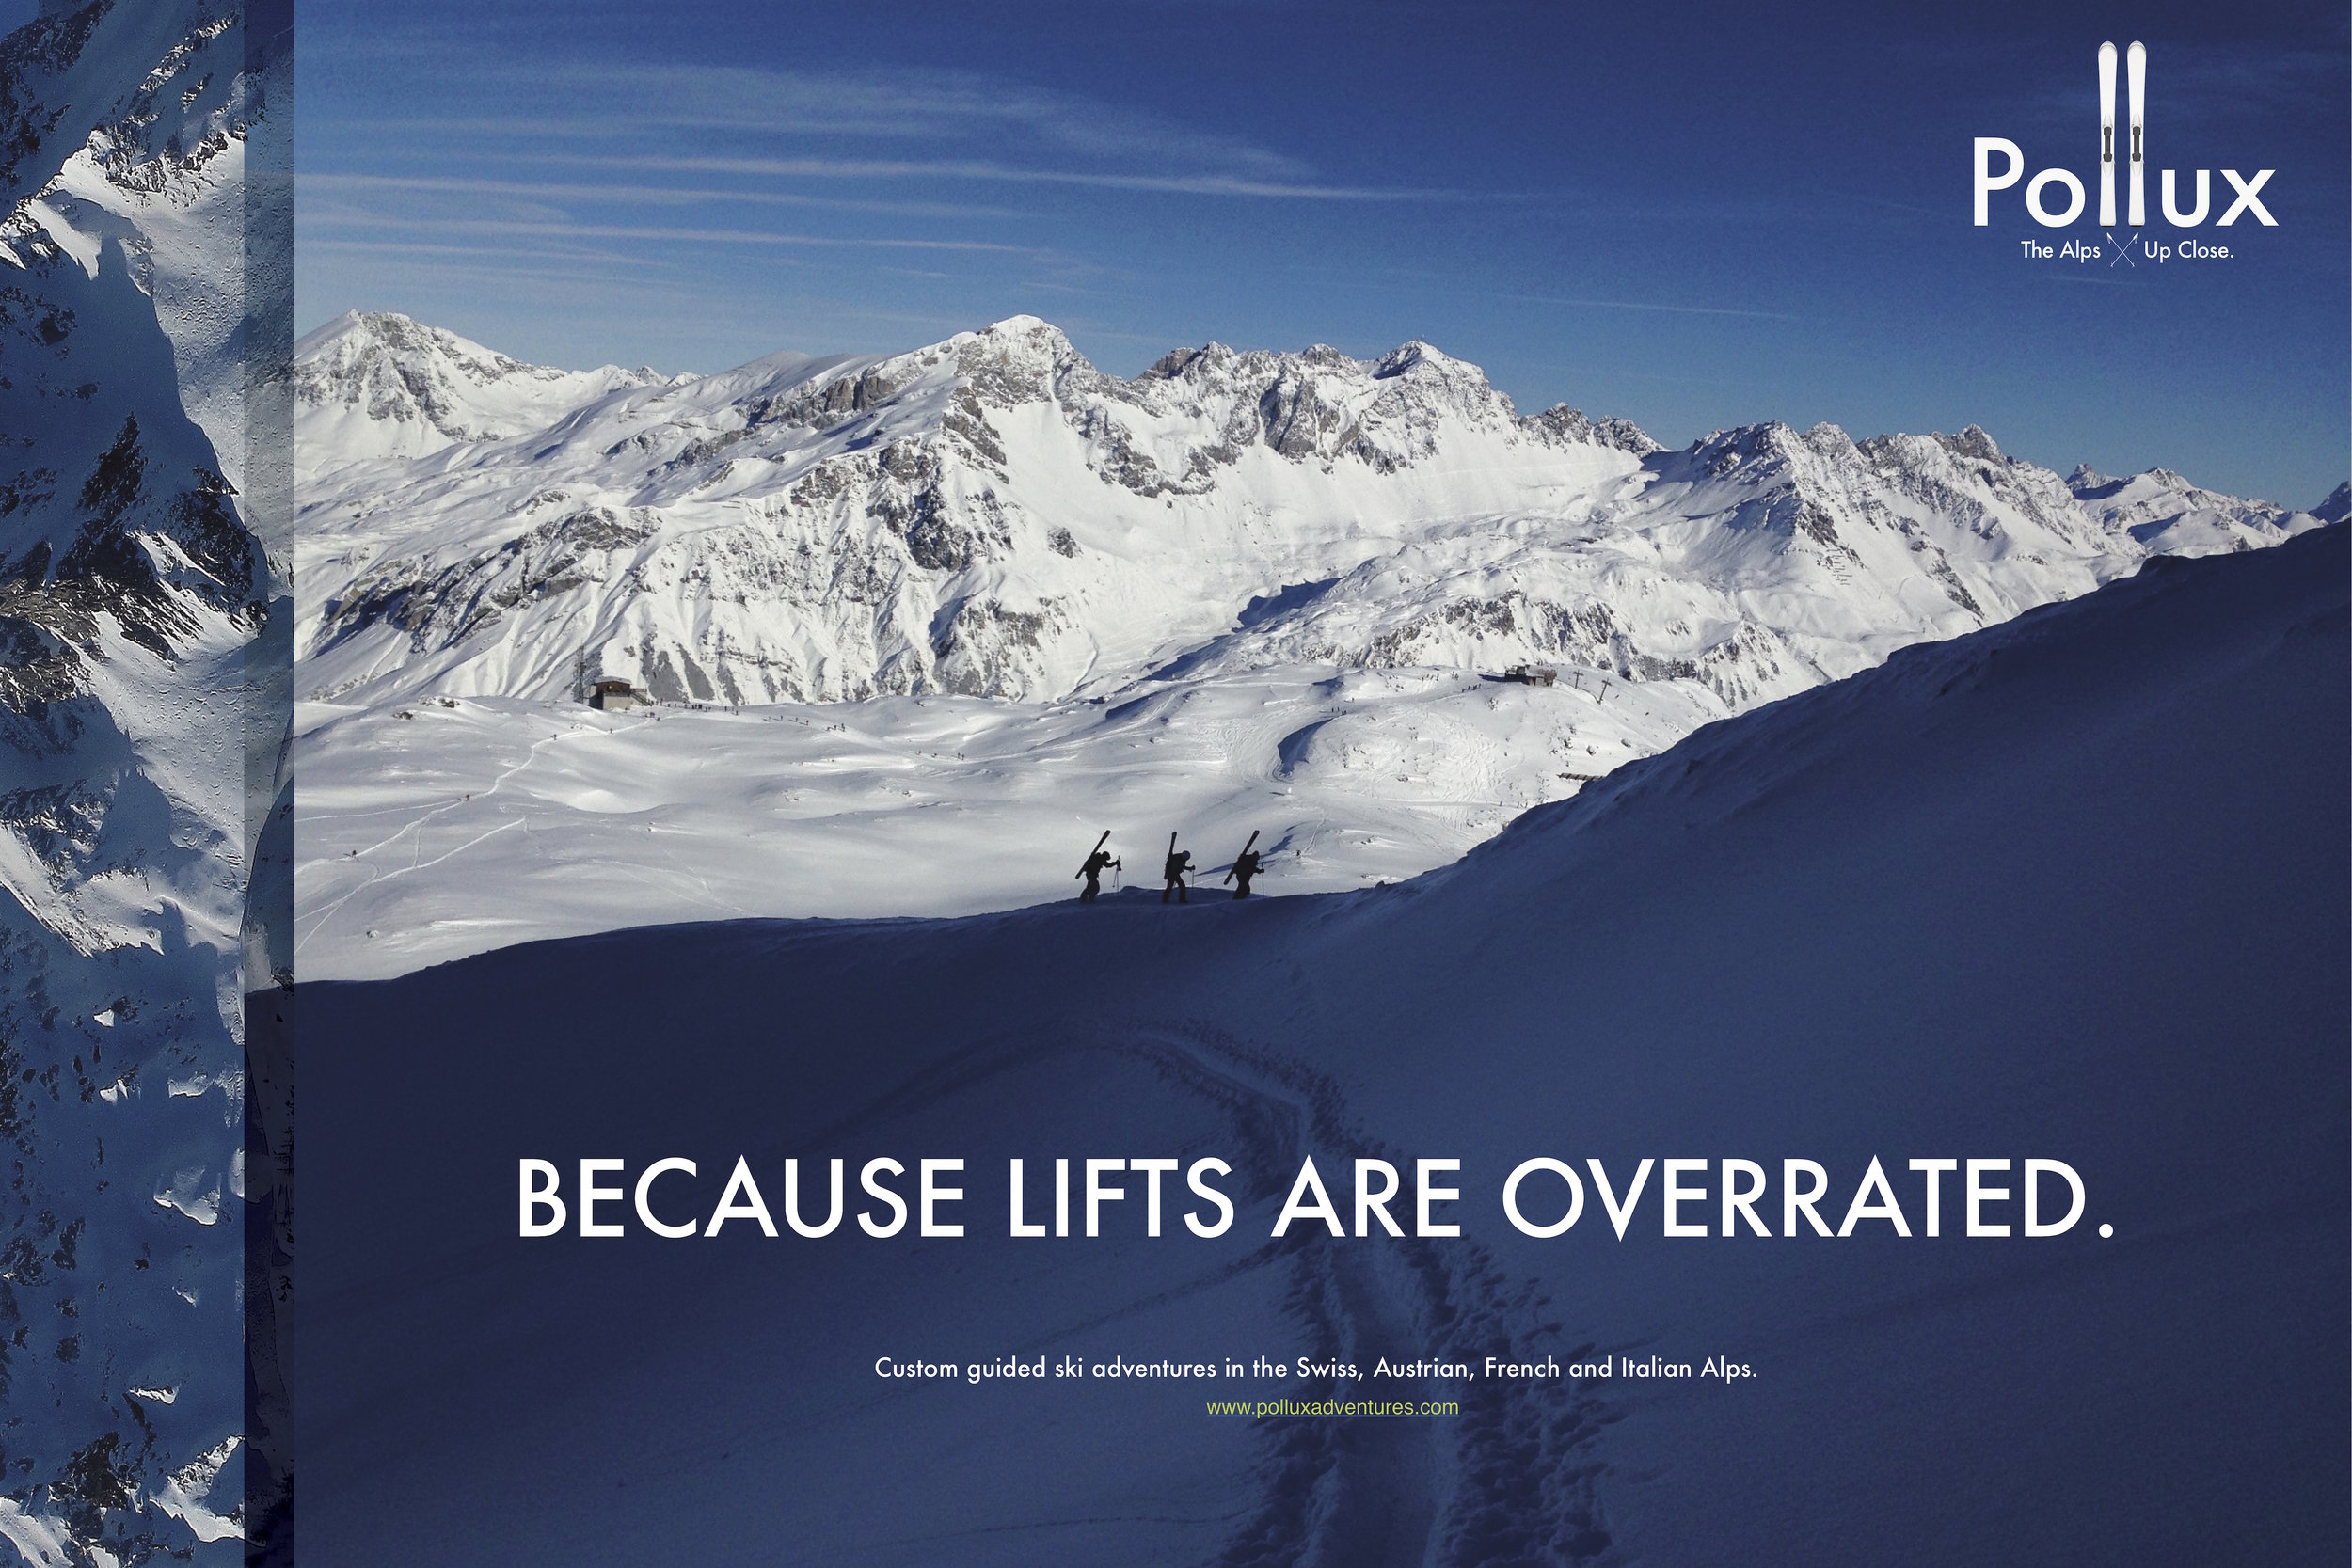 Pollux Mountain Guides - We used original photography shot on location in the Alps to create this poster series, along with a website and video. The headlines pretty much wrote themselves.VIEW THE CAMPAIGN